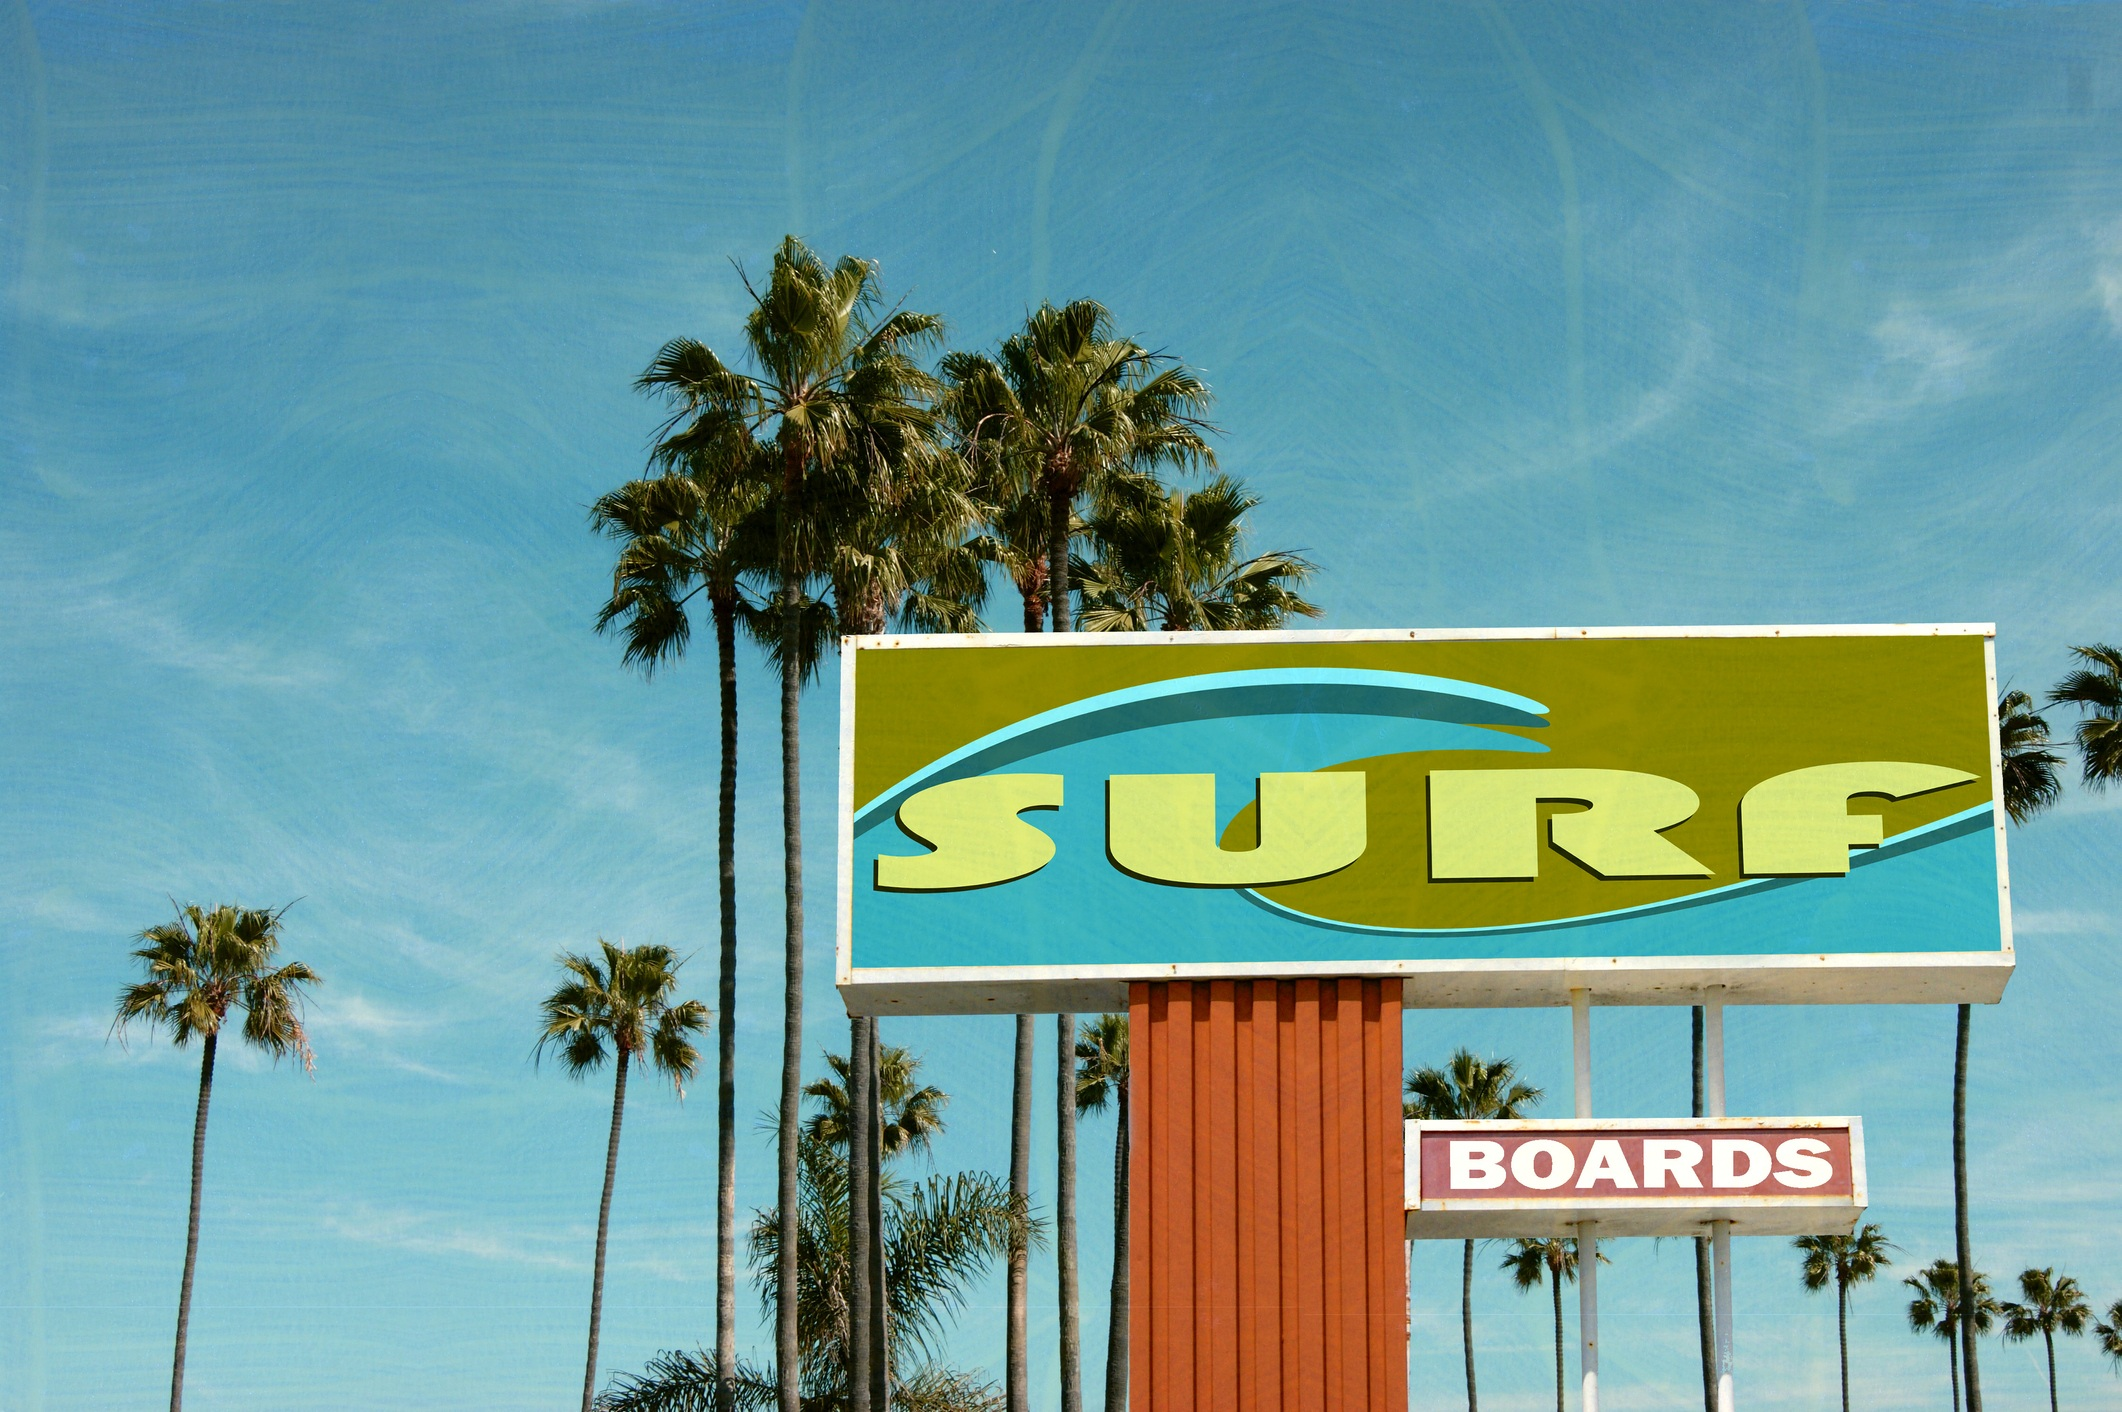 aged and worn surf sign on beach with palm trees